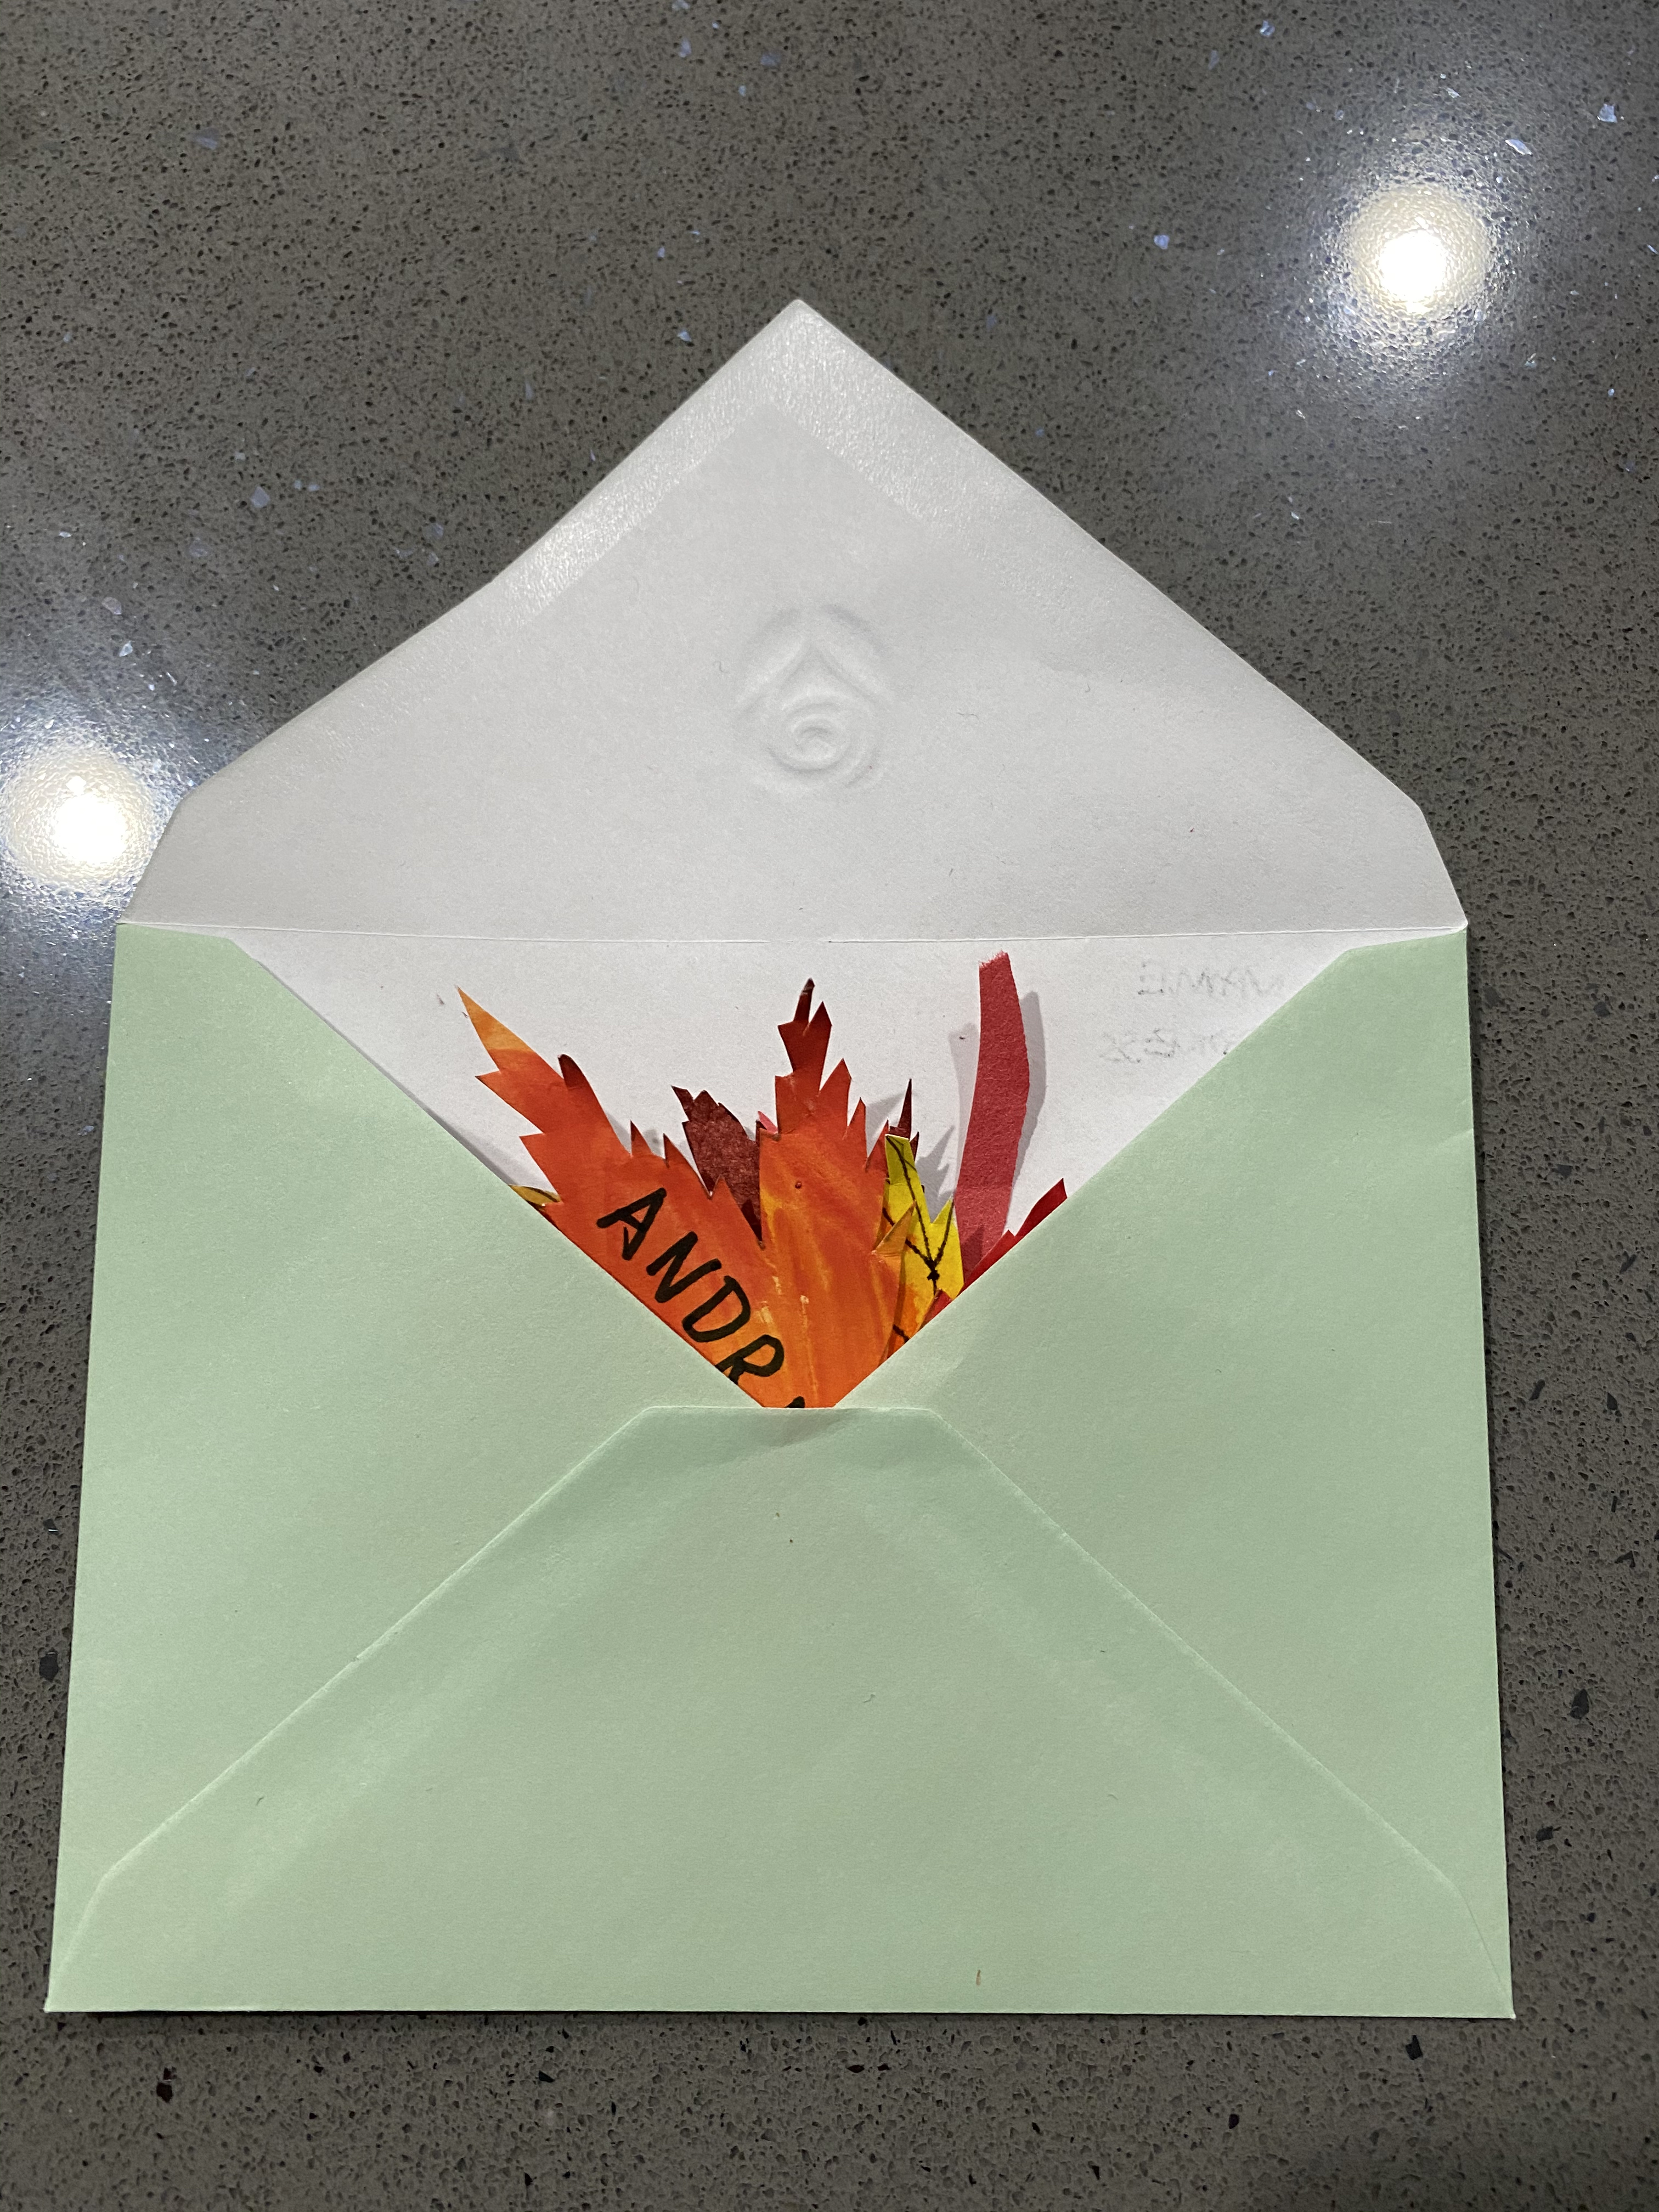 The final step: put your leaves in an envelope,